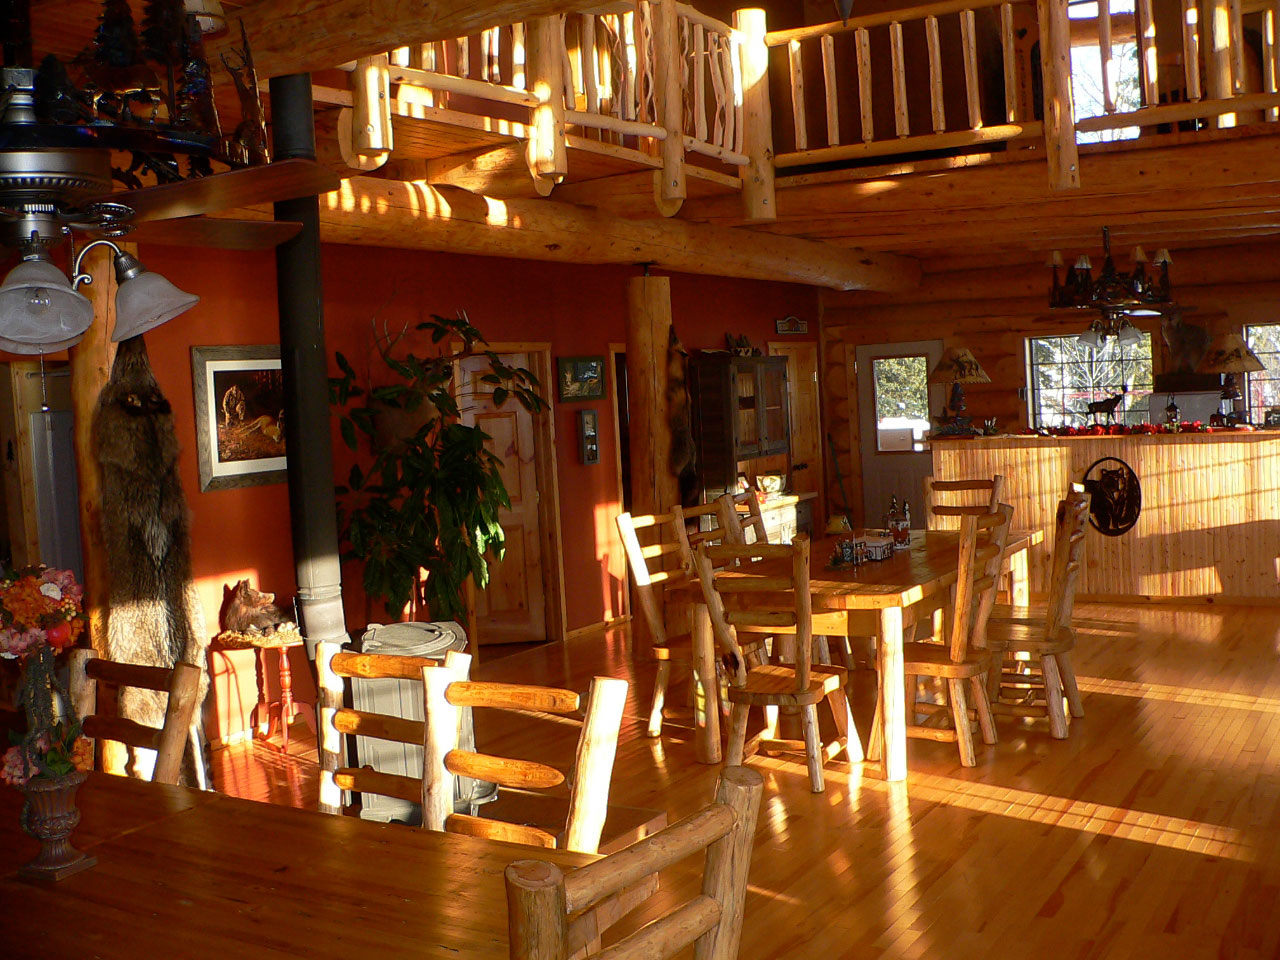 The dining room at the log cabin main lodge at Smoothstone Lake Lodge in Saskatchewan, Canada.